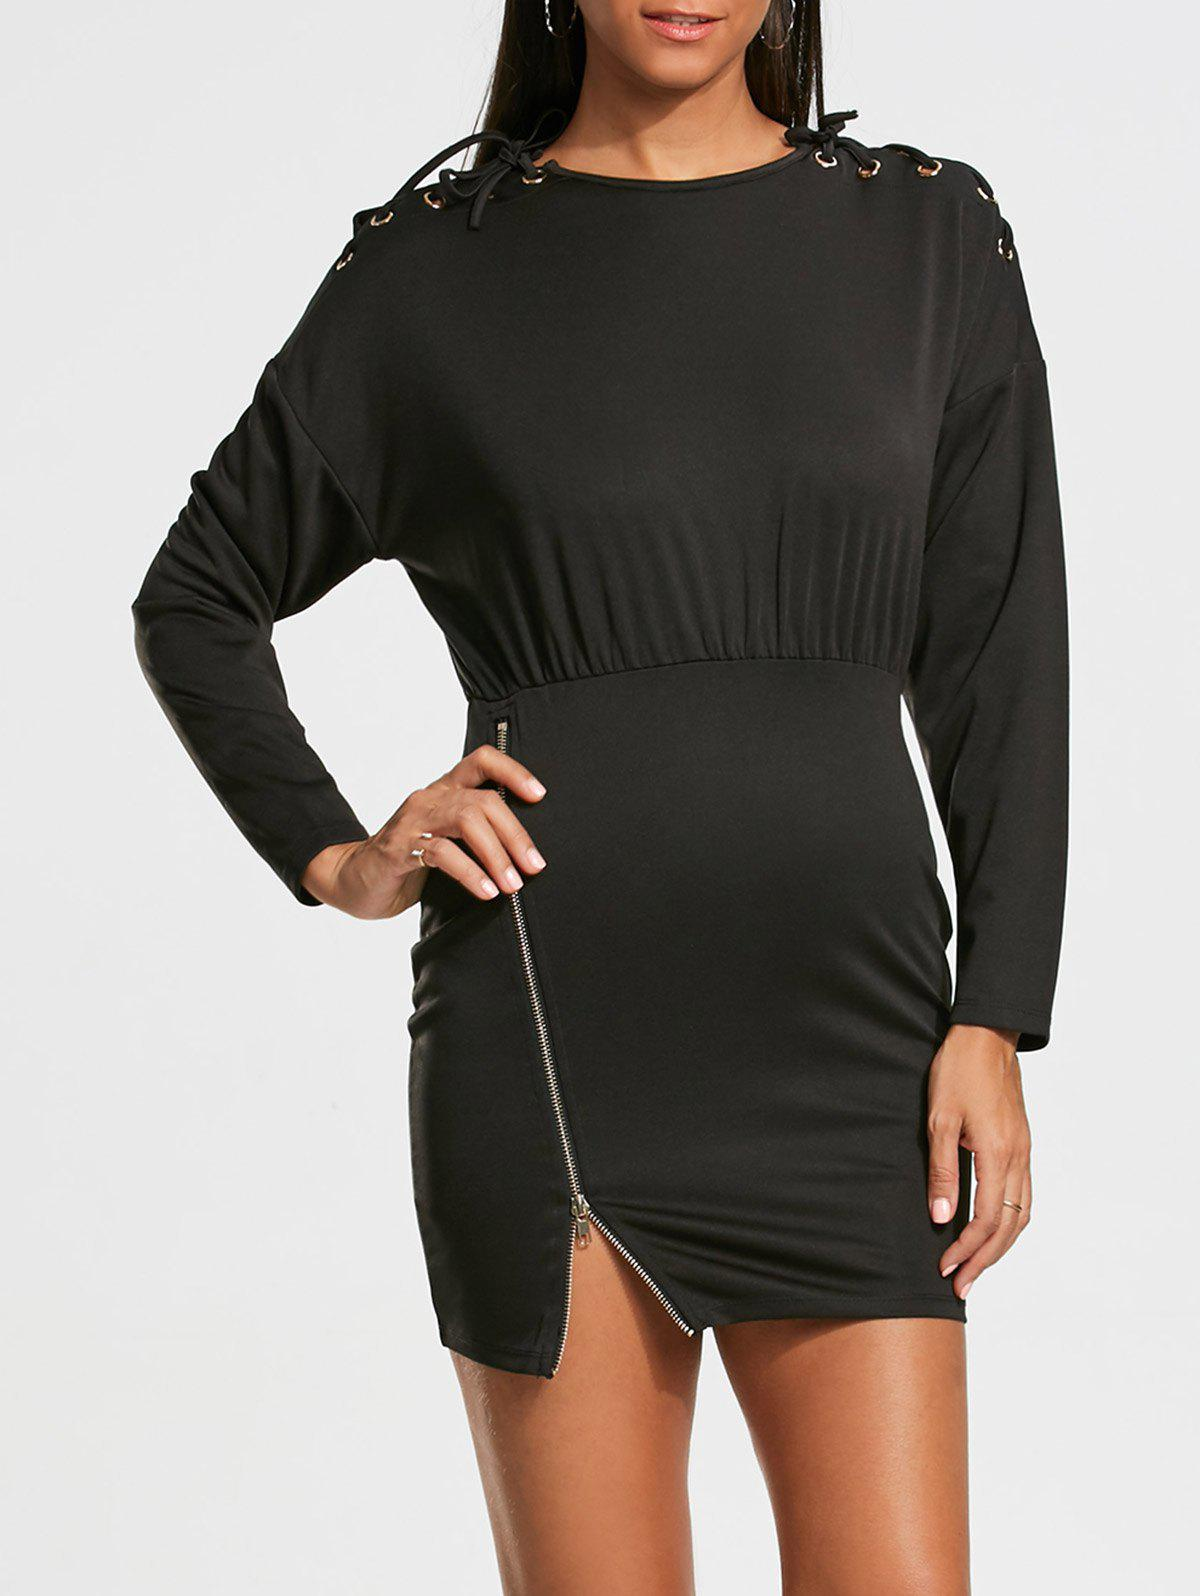 Long Sleeve Zipper Drop Shoulder Bodycon Dress - BLACK M